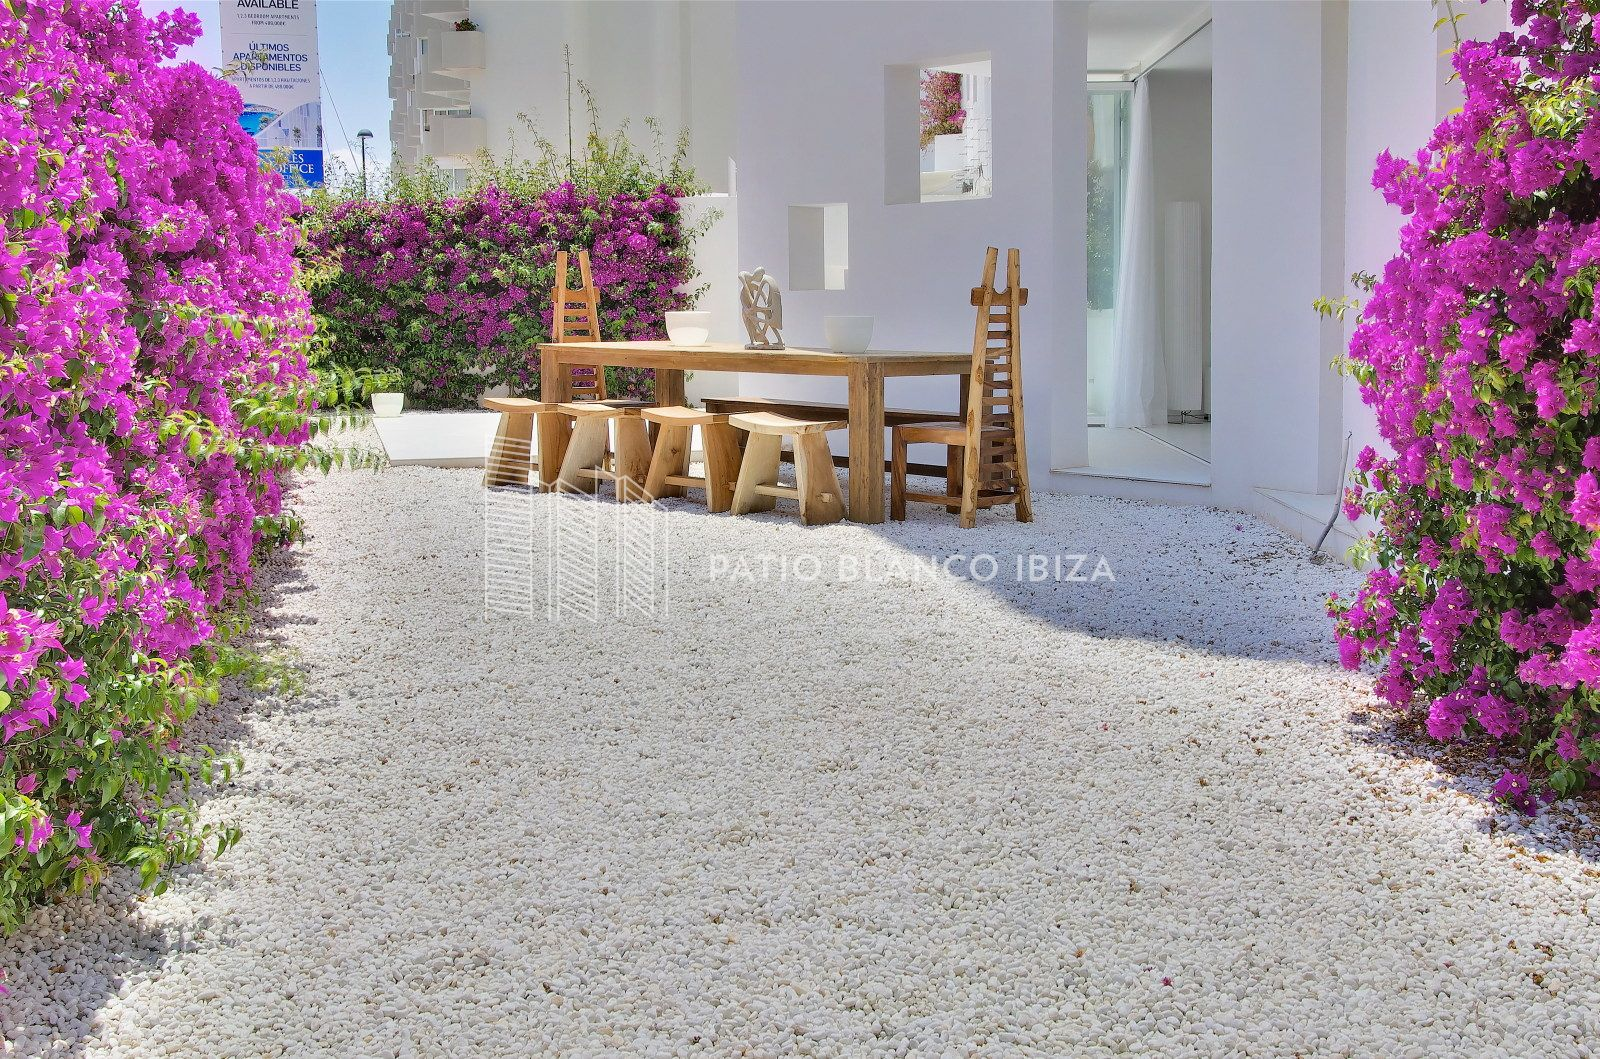 Patio-Jardin-JPG-mini_22